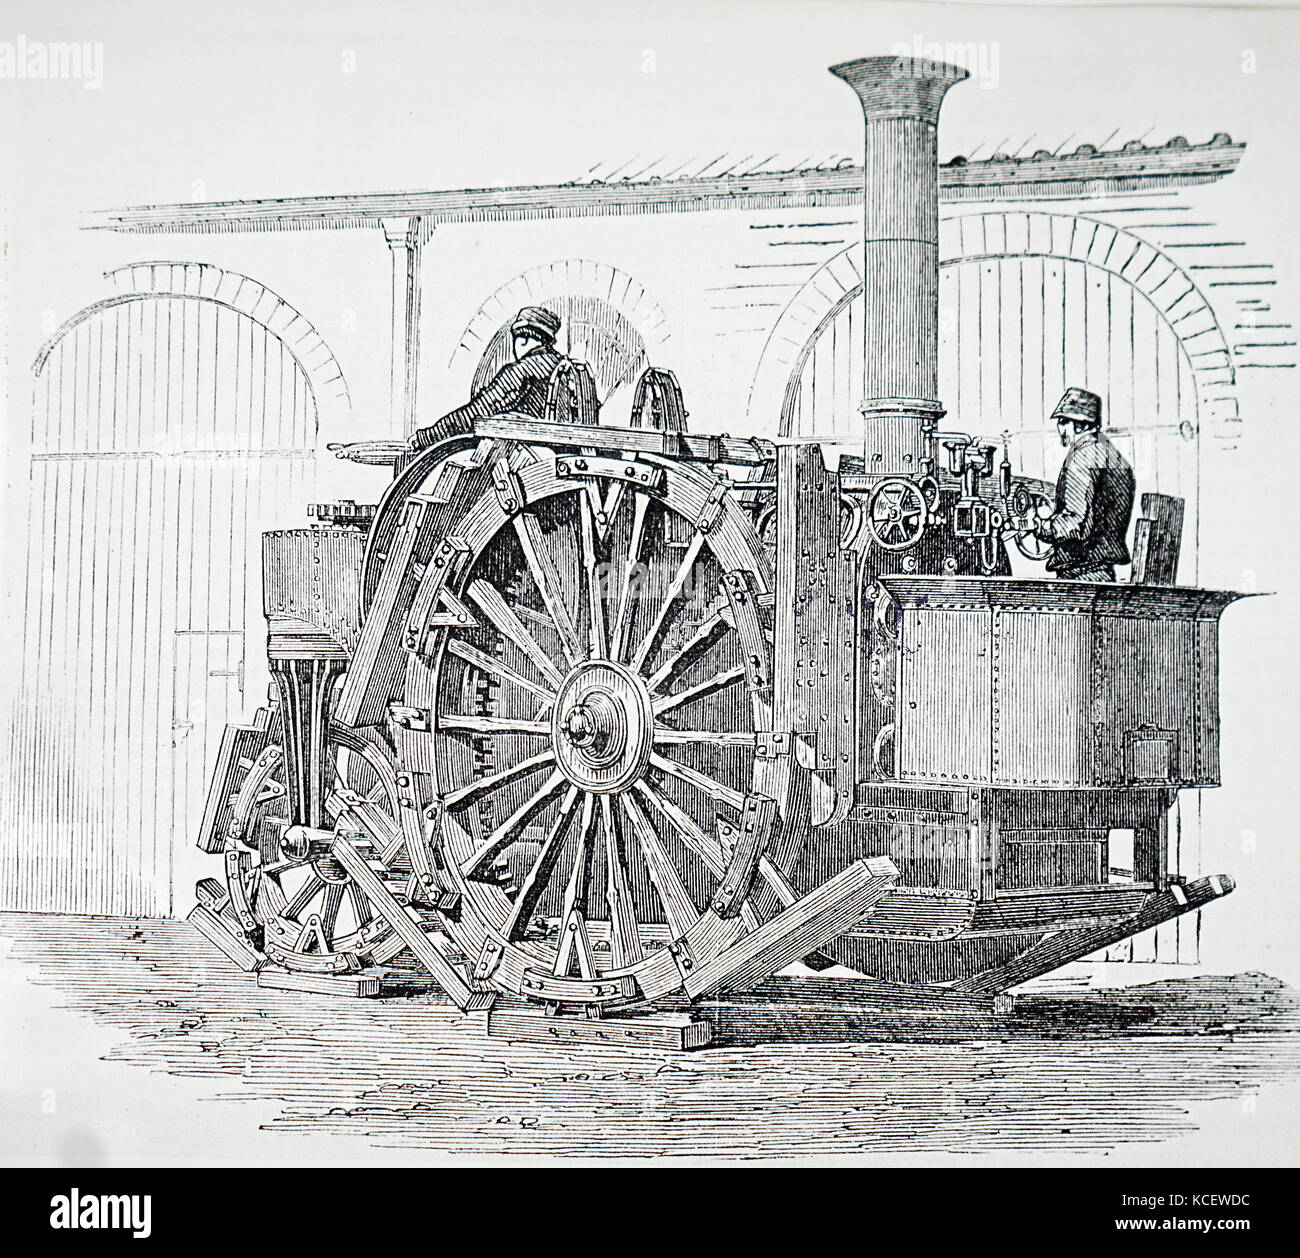 Illustration depicting steam engines and threshing machines at the 1854 Smithfield Show. Dated 19th Century - Stock Image